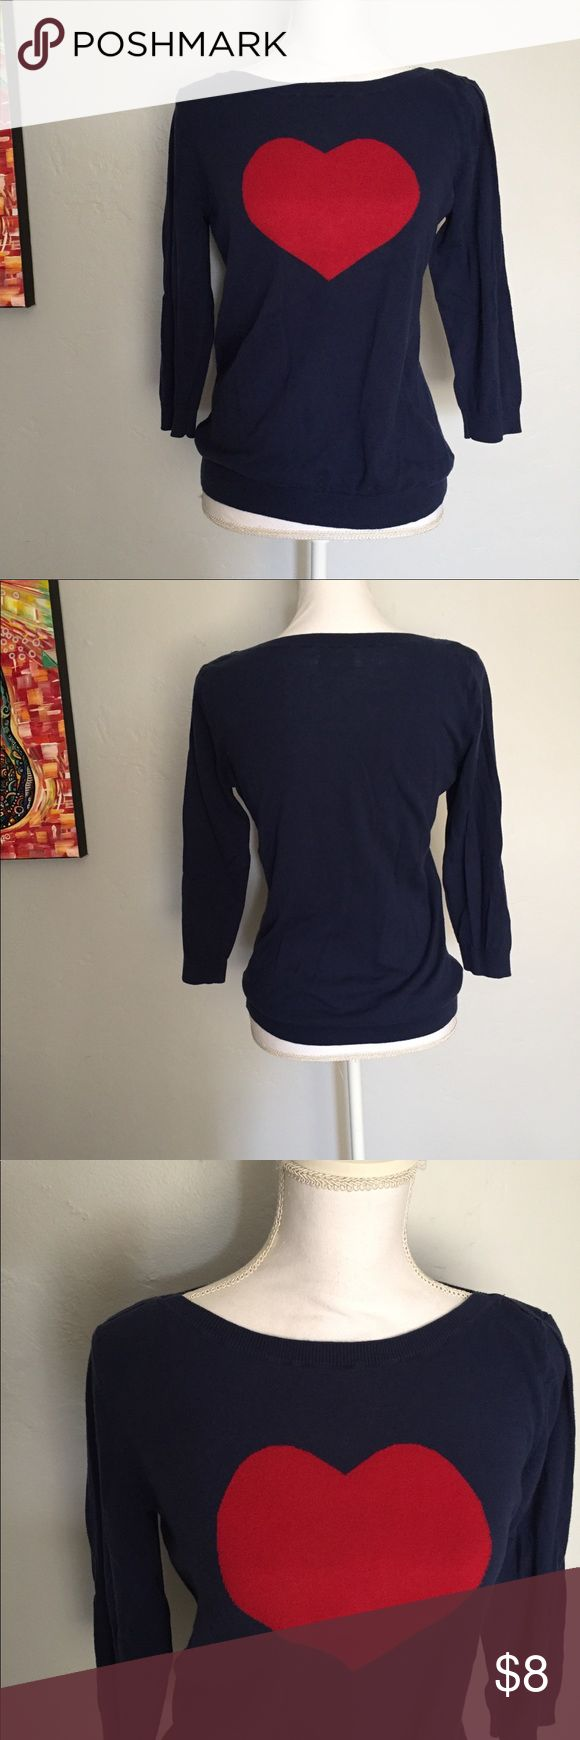 """Heart ❤️ Sweater Boat neck navy sweater with a big ❤️ on the front. 3/4 length sleeves. Good condition. A little faded from washing. Chest measurement armpit to armpit 18"""".  Stretchy. Old Navy Sweaters Crew & Scoop Necks"""